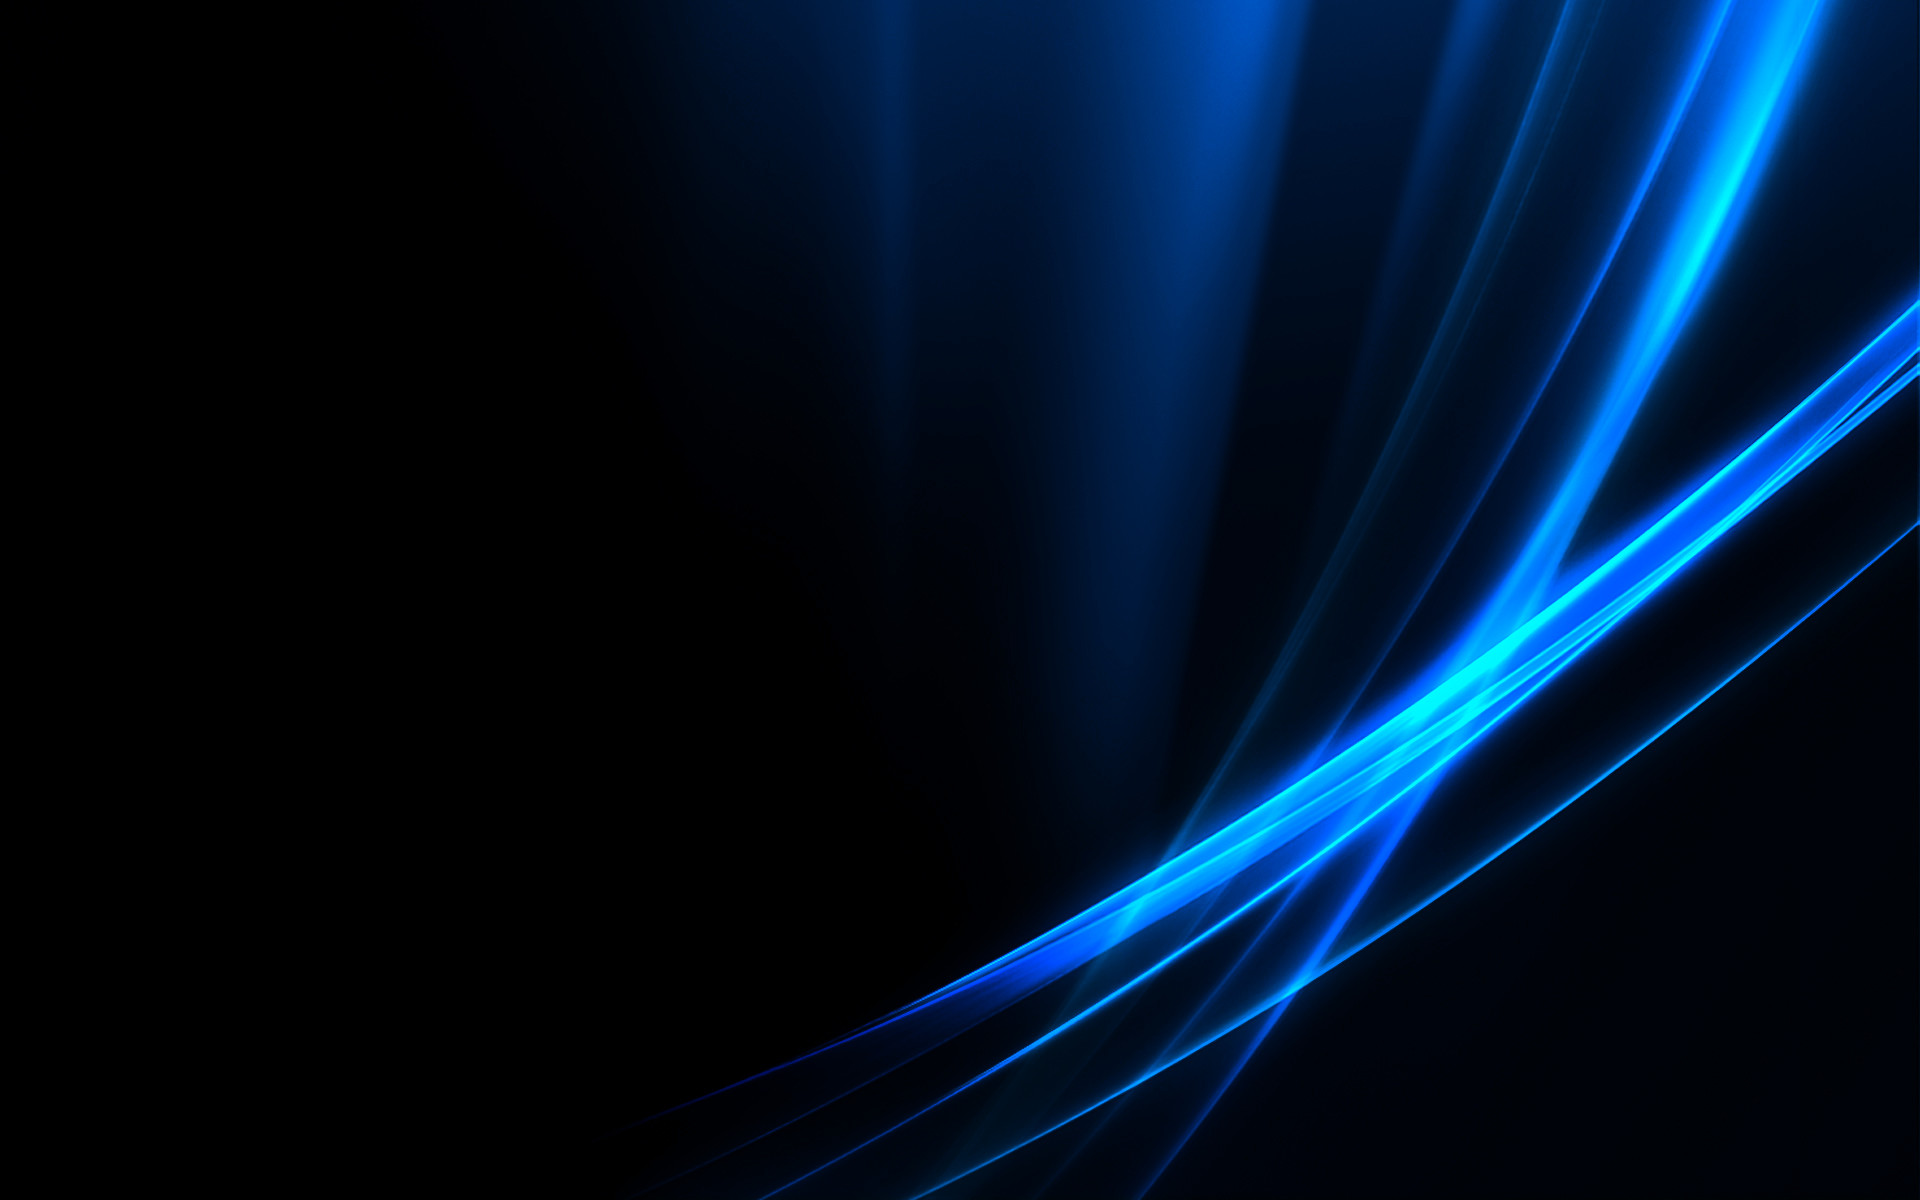 Related Desktop Backgrounds. Black And Blue Abstract